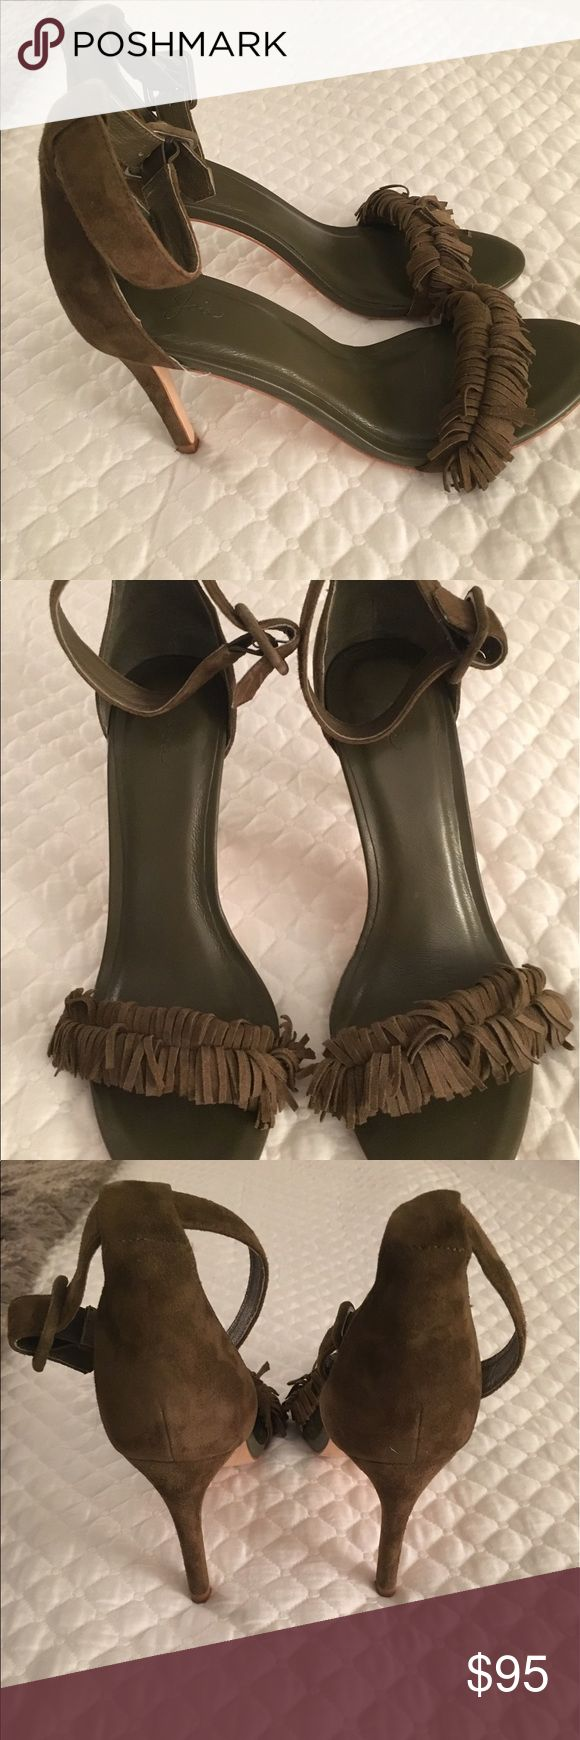 "Joie Pippi Fringe Sandal Shoe Heels Green Brown Moss soft suede. Fringed toe strap with adjustable ankle-strap. 3.75"" covers stiletto heel. In good condition. Joie Shoes Heels"